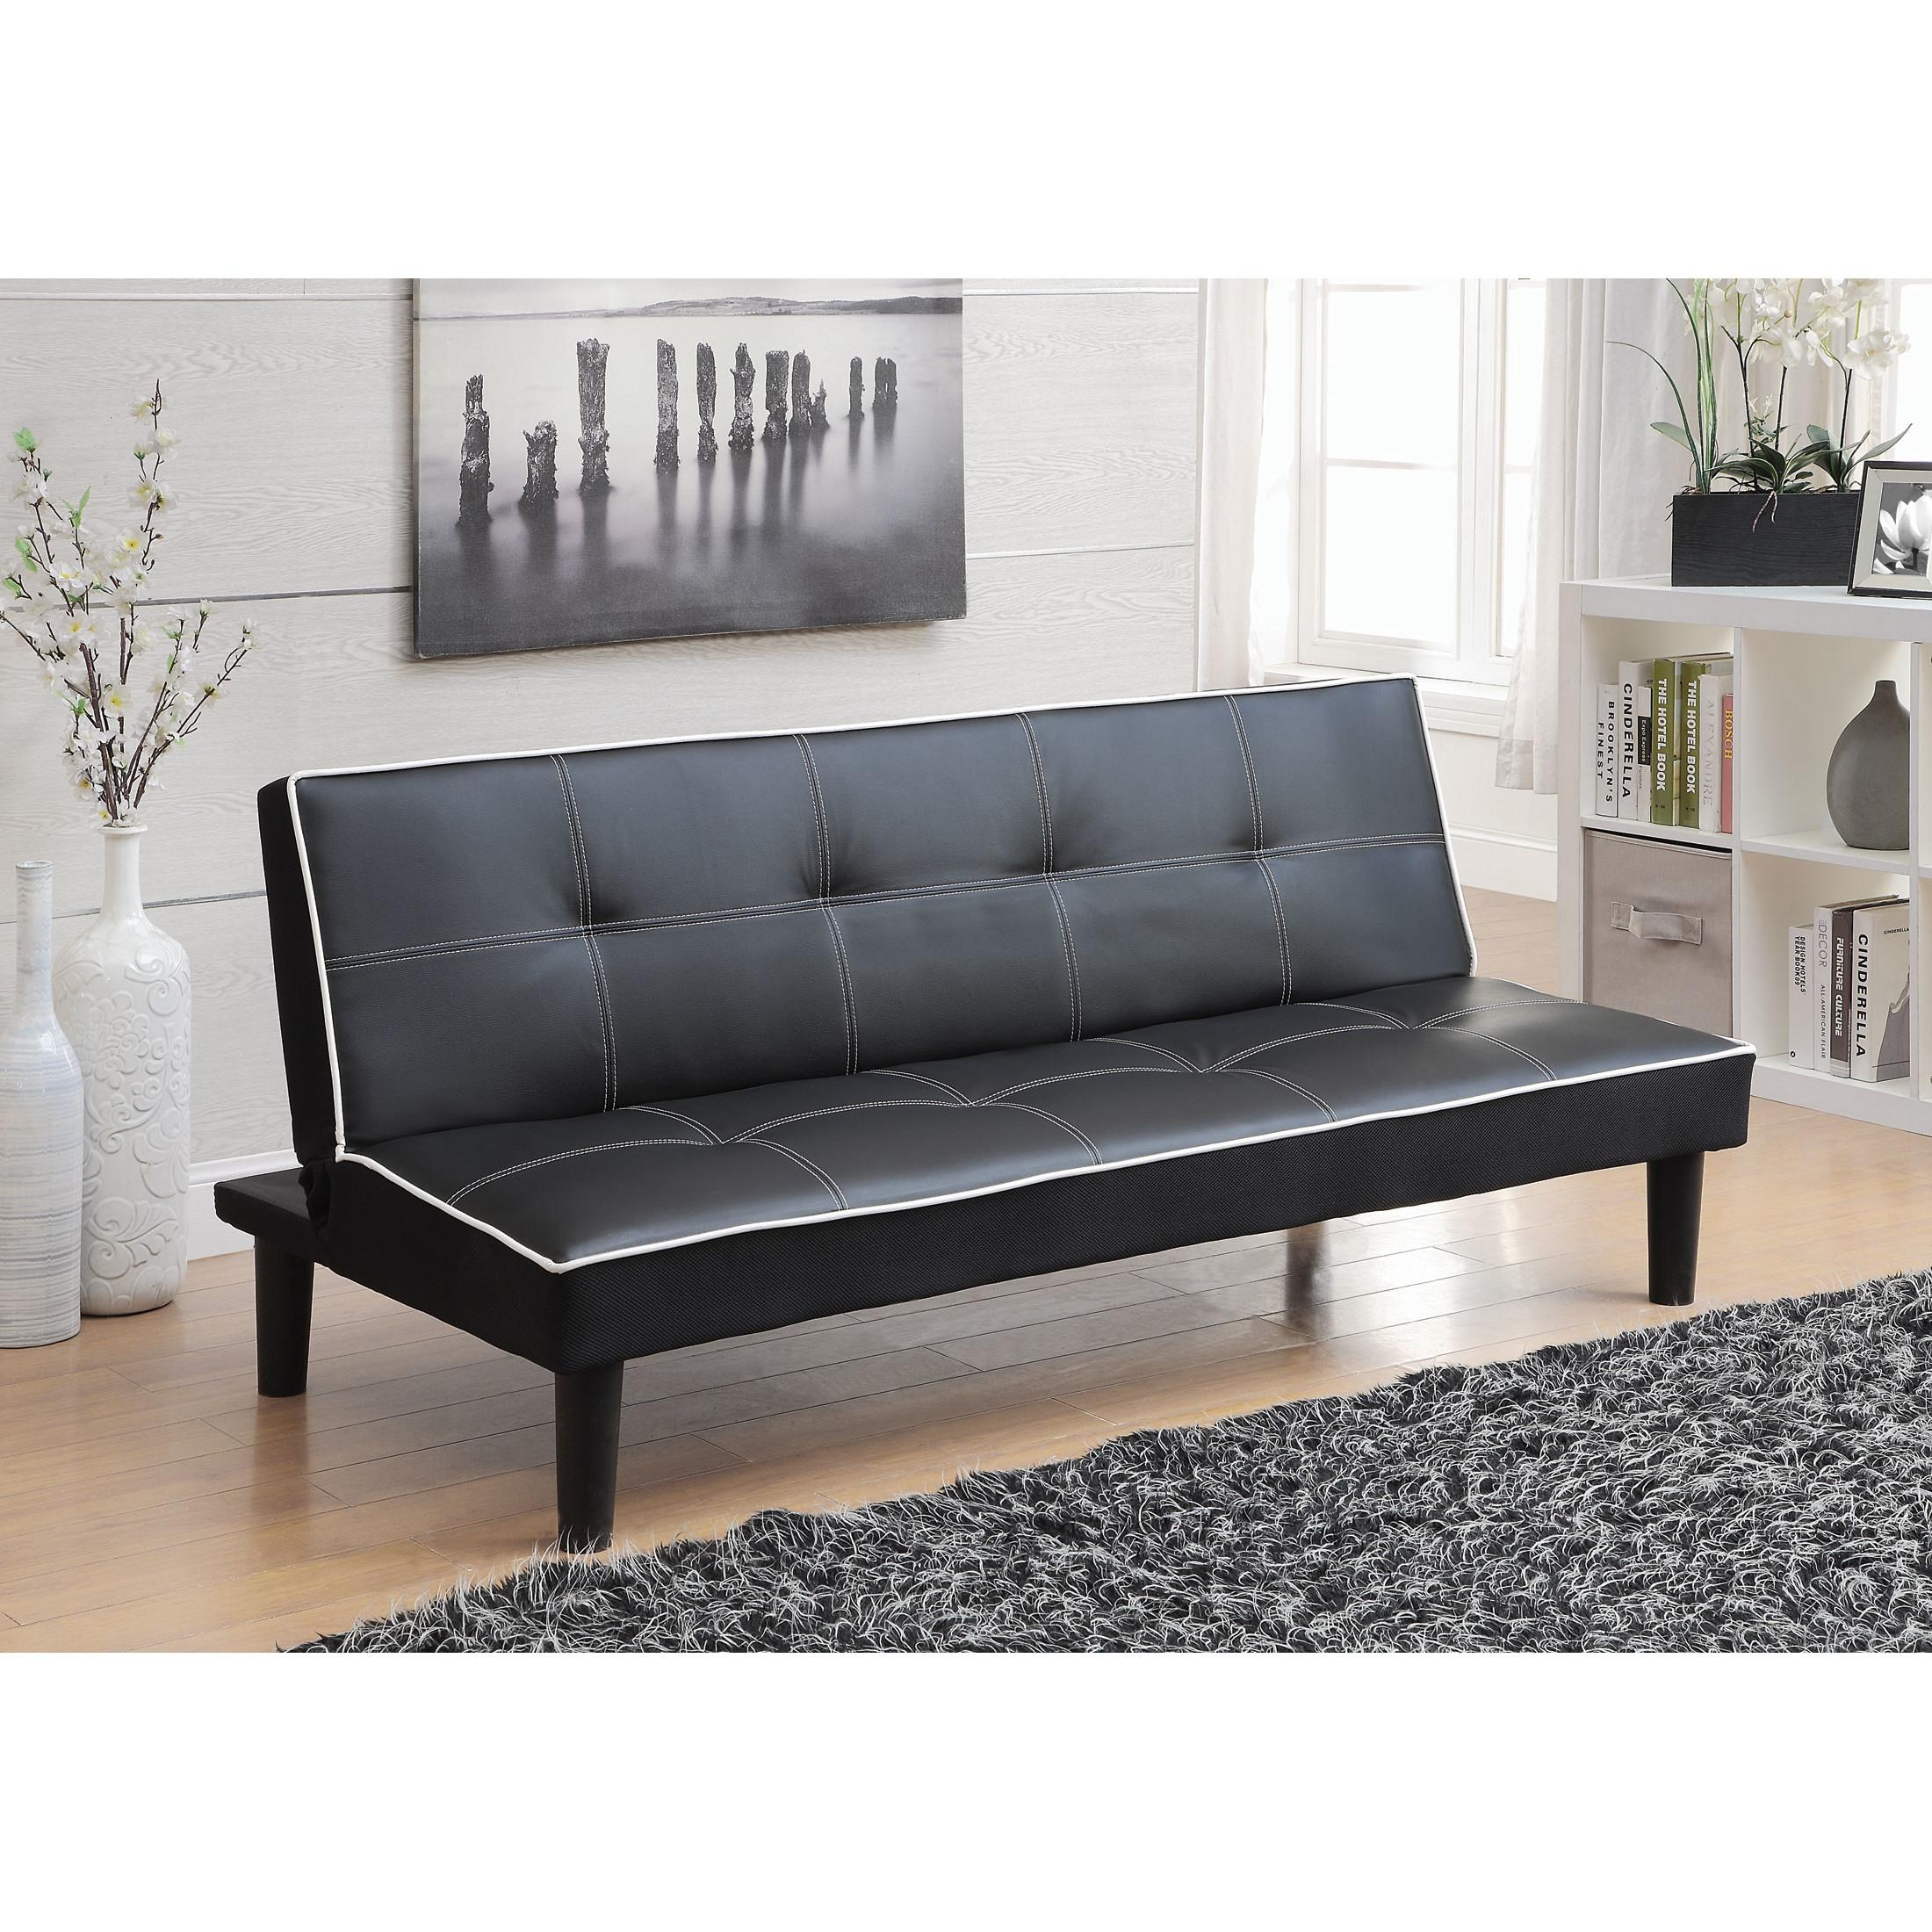 Types Of Sleeper Sofas – Ansugallery With Everyday Sleeper Sofas (Image 19 of 20)